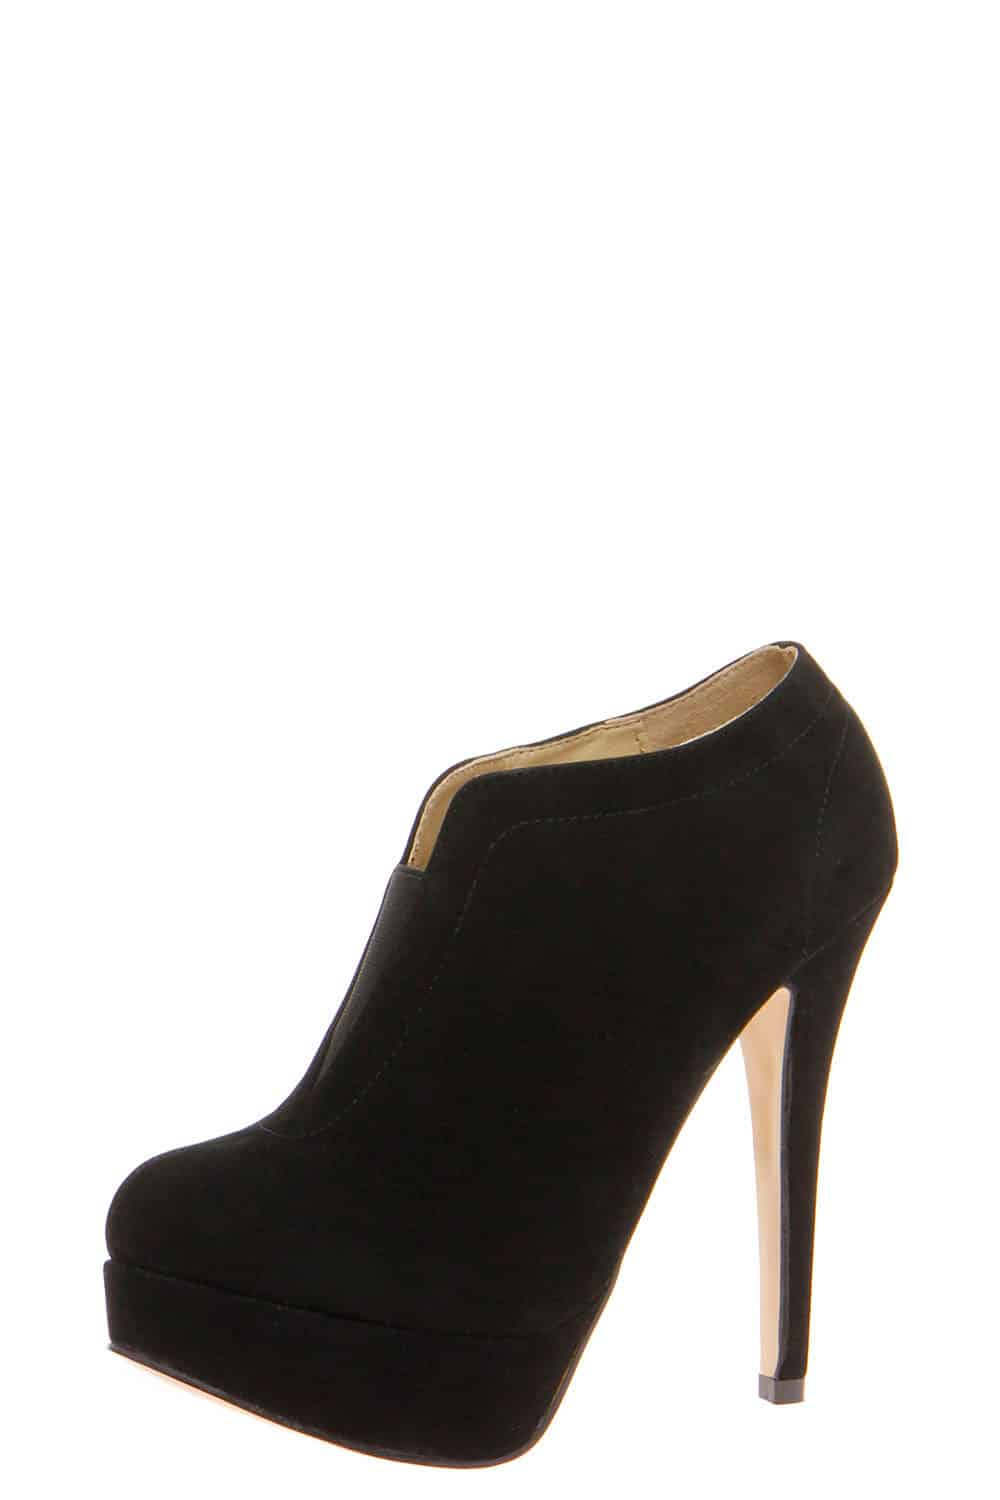 party black heels Holiday Party Looks & Styles! What To Wear For 2013 New Years Eve Party?